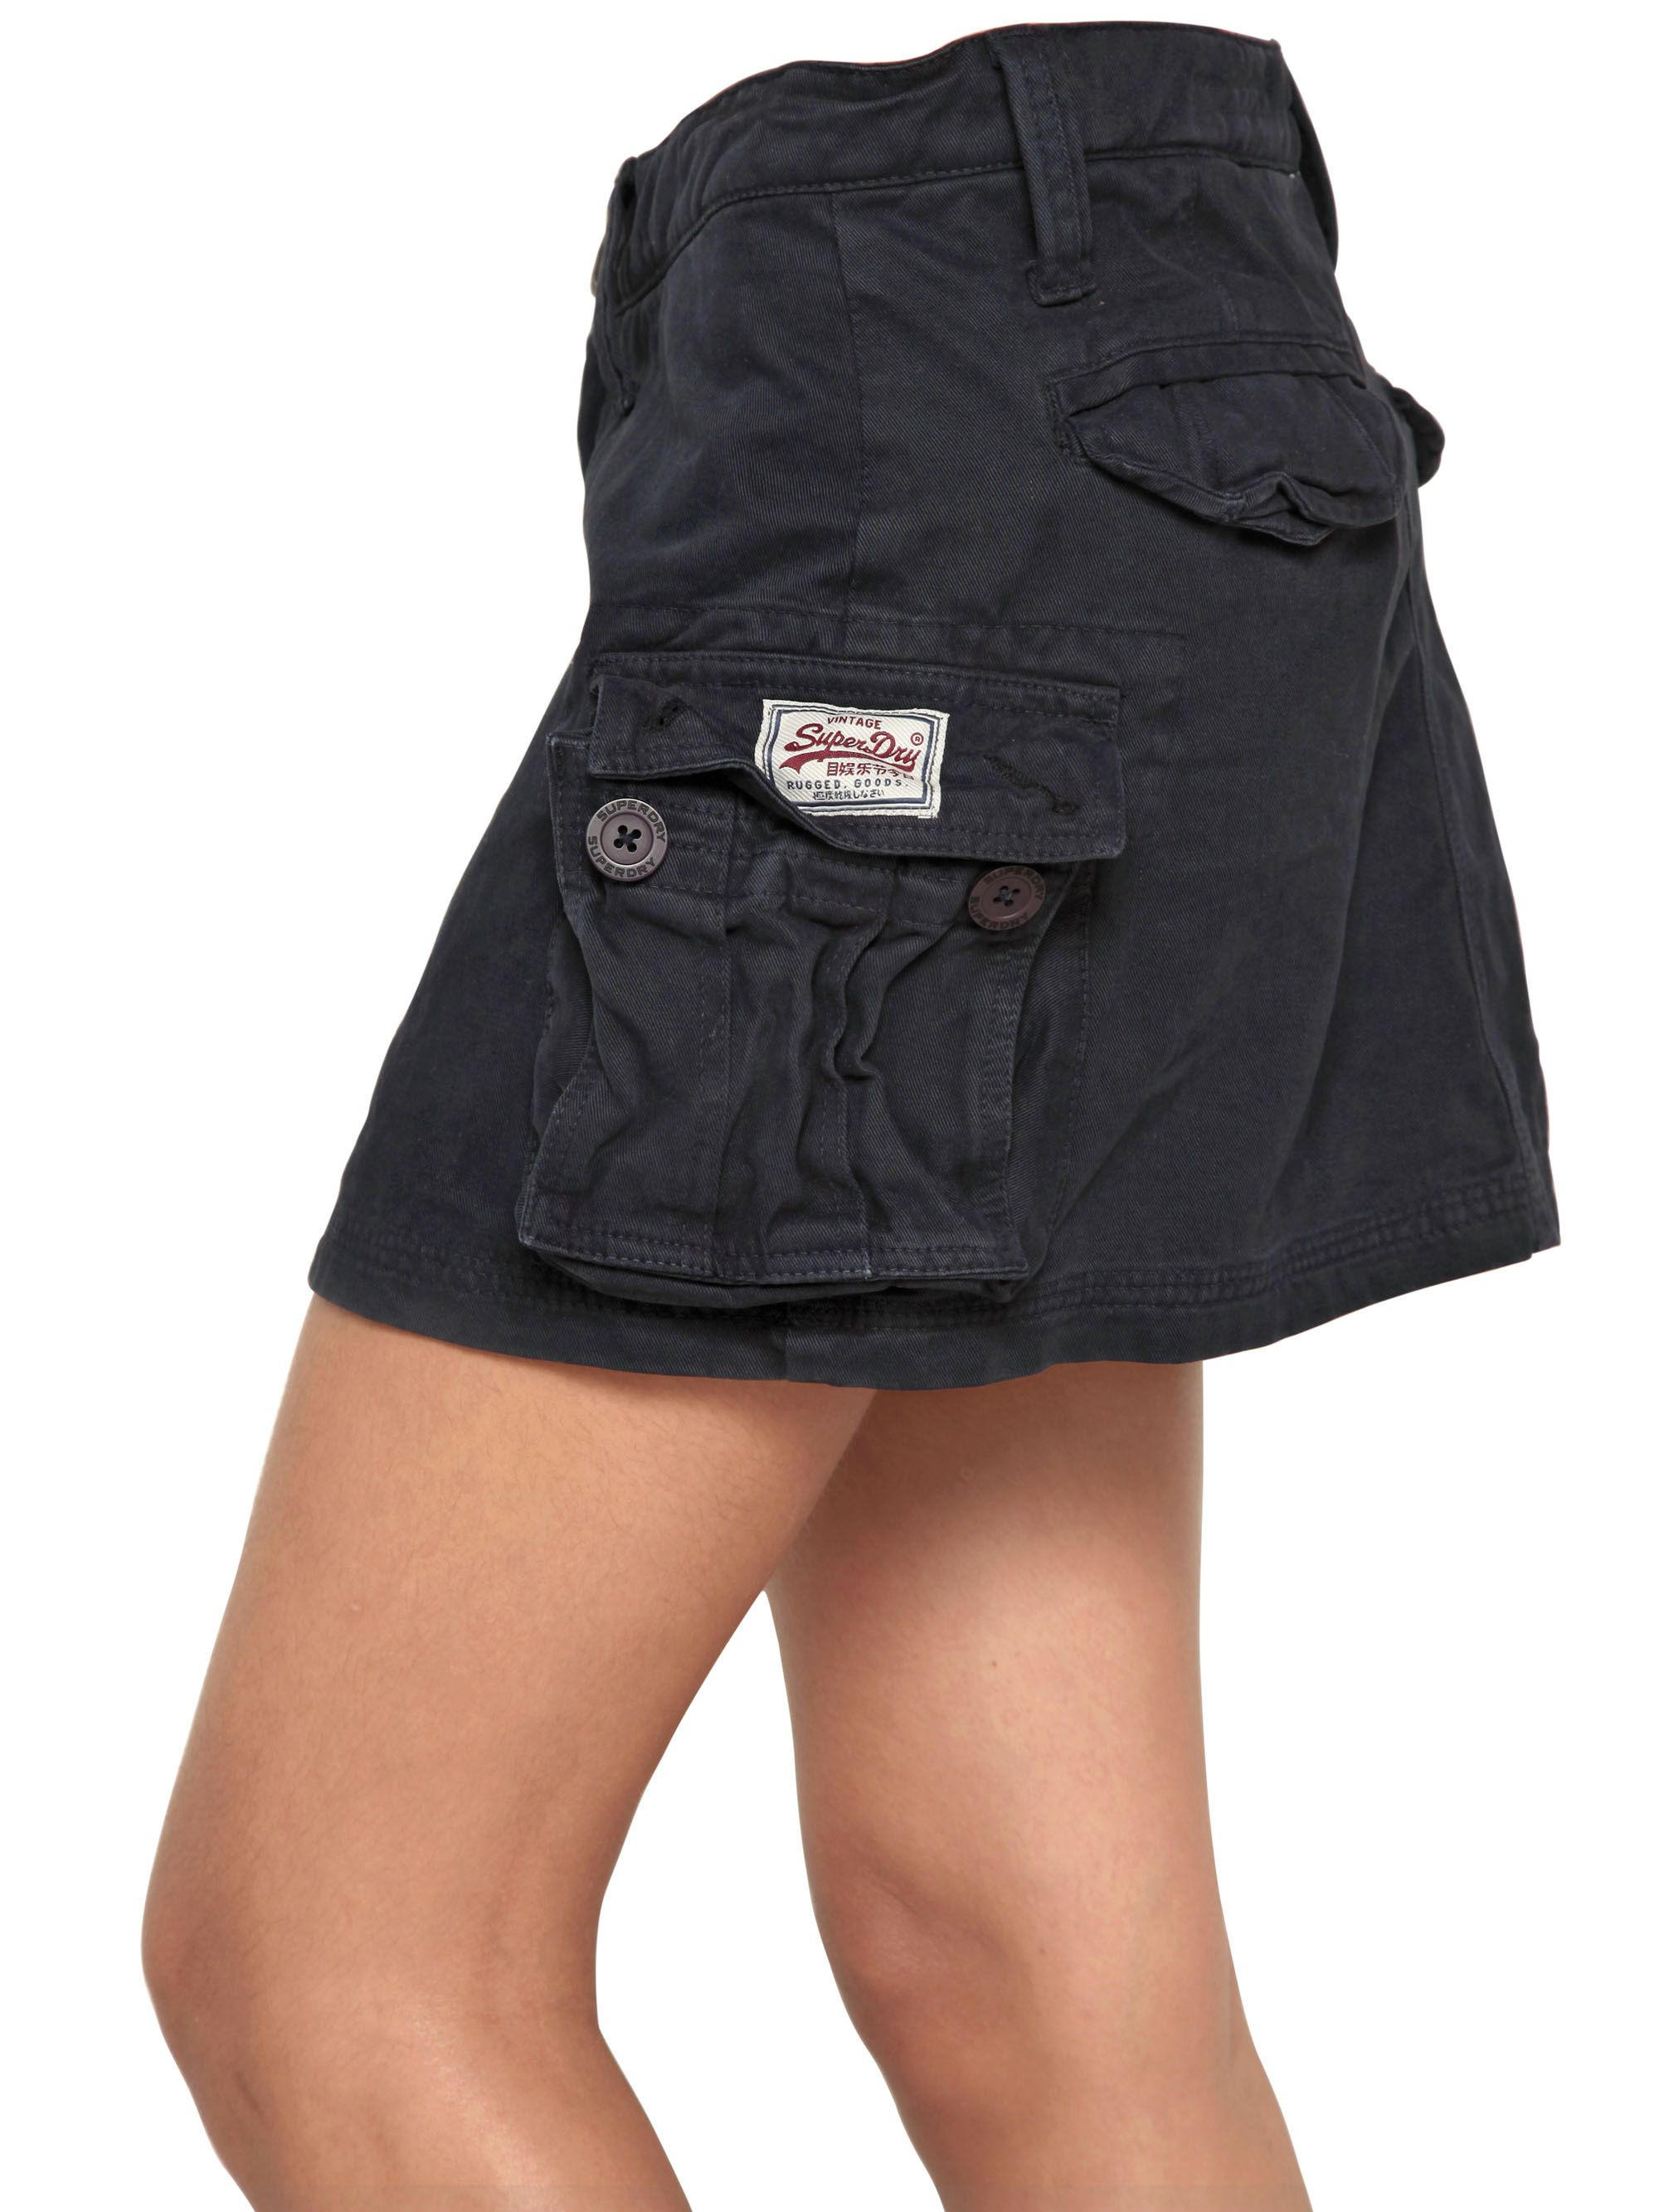 Superdry Cotton Cargo Skirt in Black - Lyst 7394298e68bf